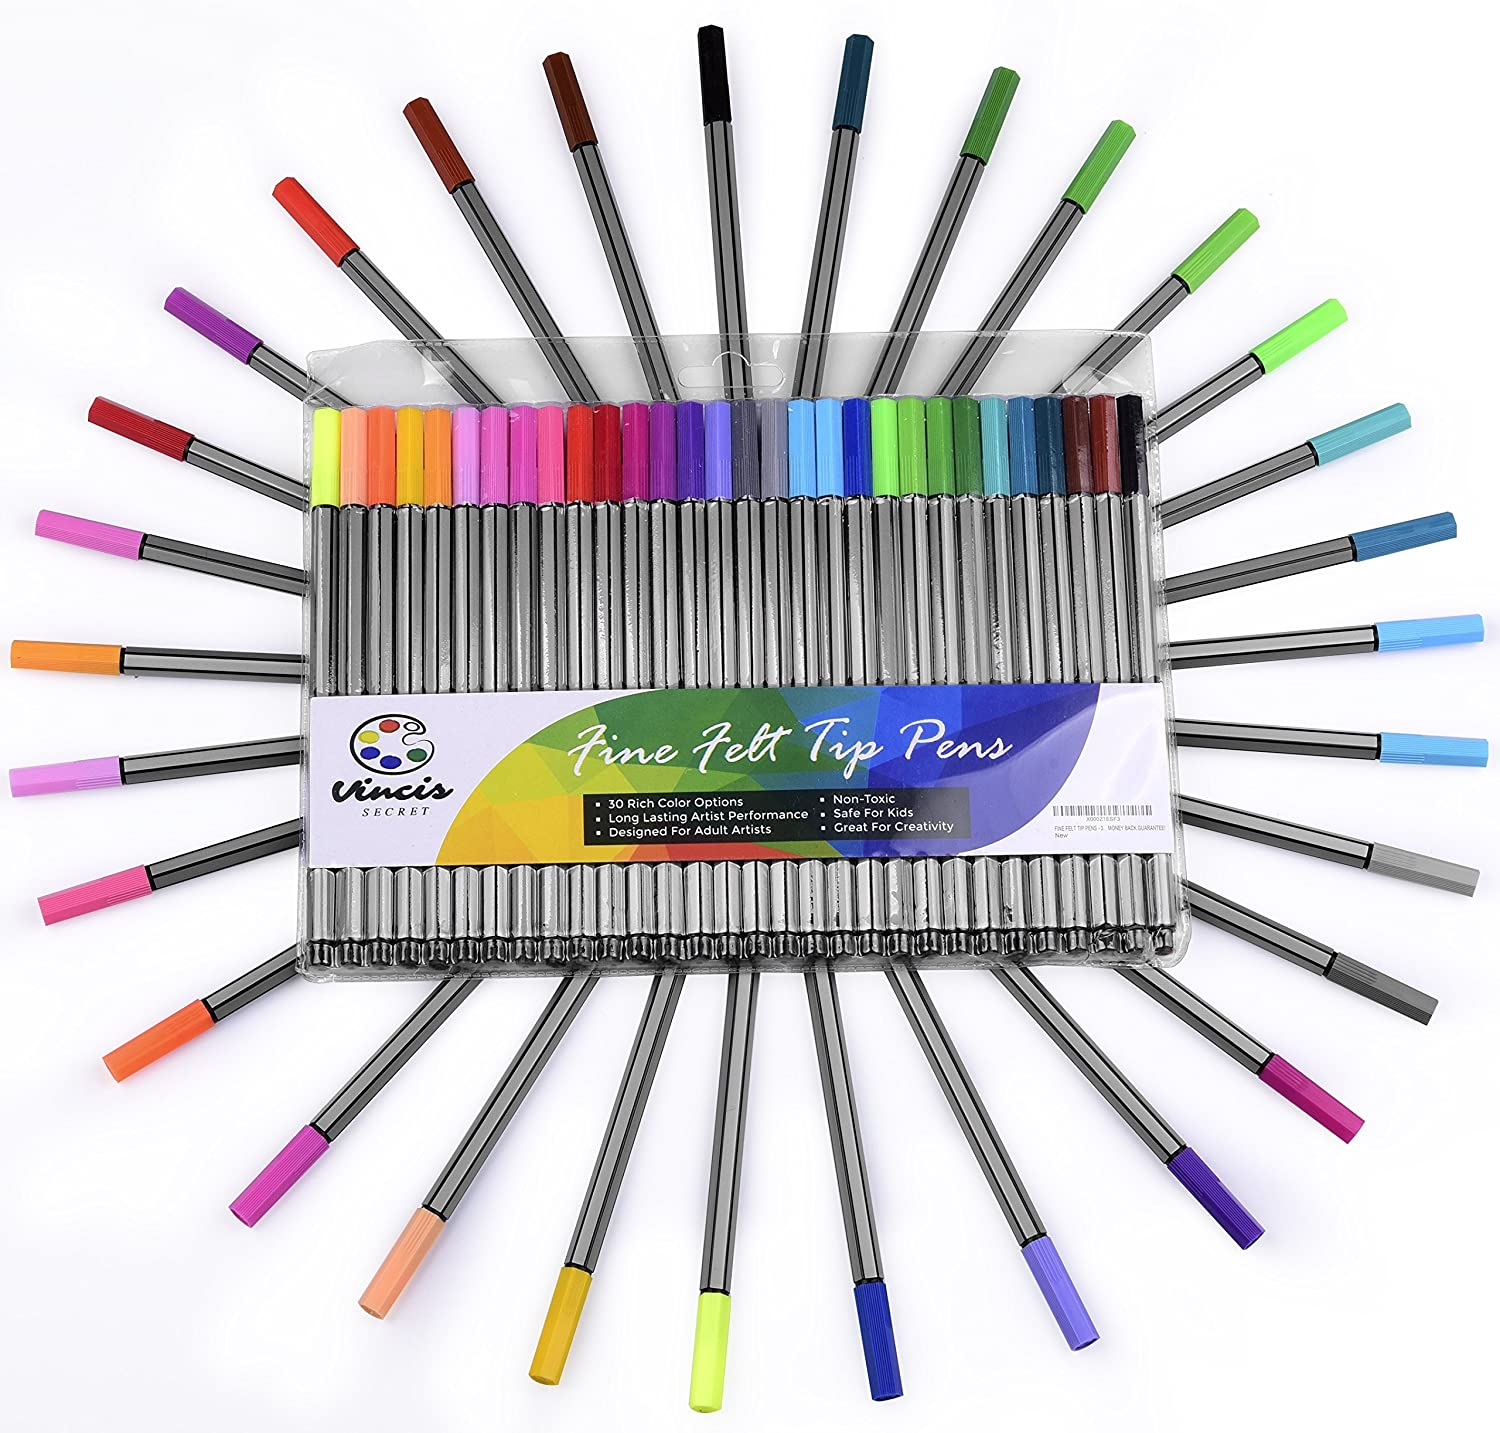 Color drawing pens for artists - Fine Felt Tip Pens 30 Piece Colored Pen Art Set Ideal For Adult Coloring And Fine Drawing Amazon Co Uk Office Products